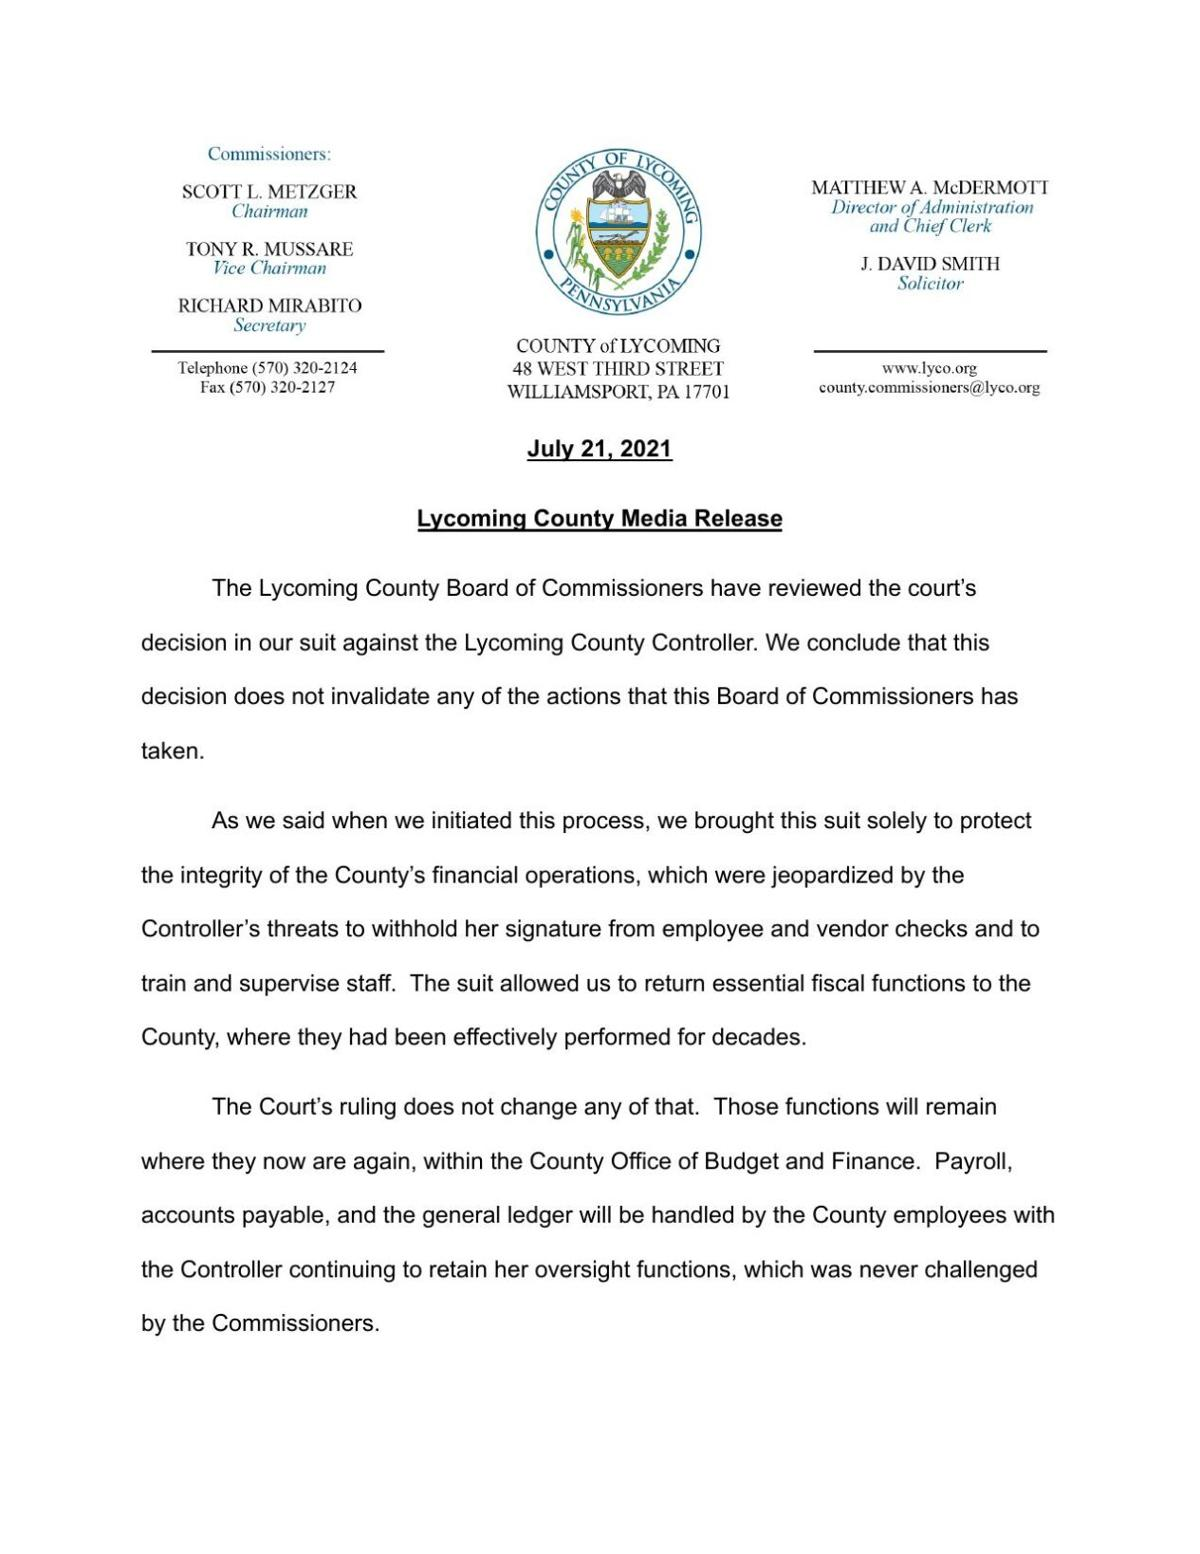 Lycoming County Commissioners Media Release